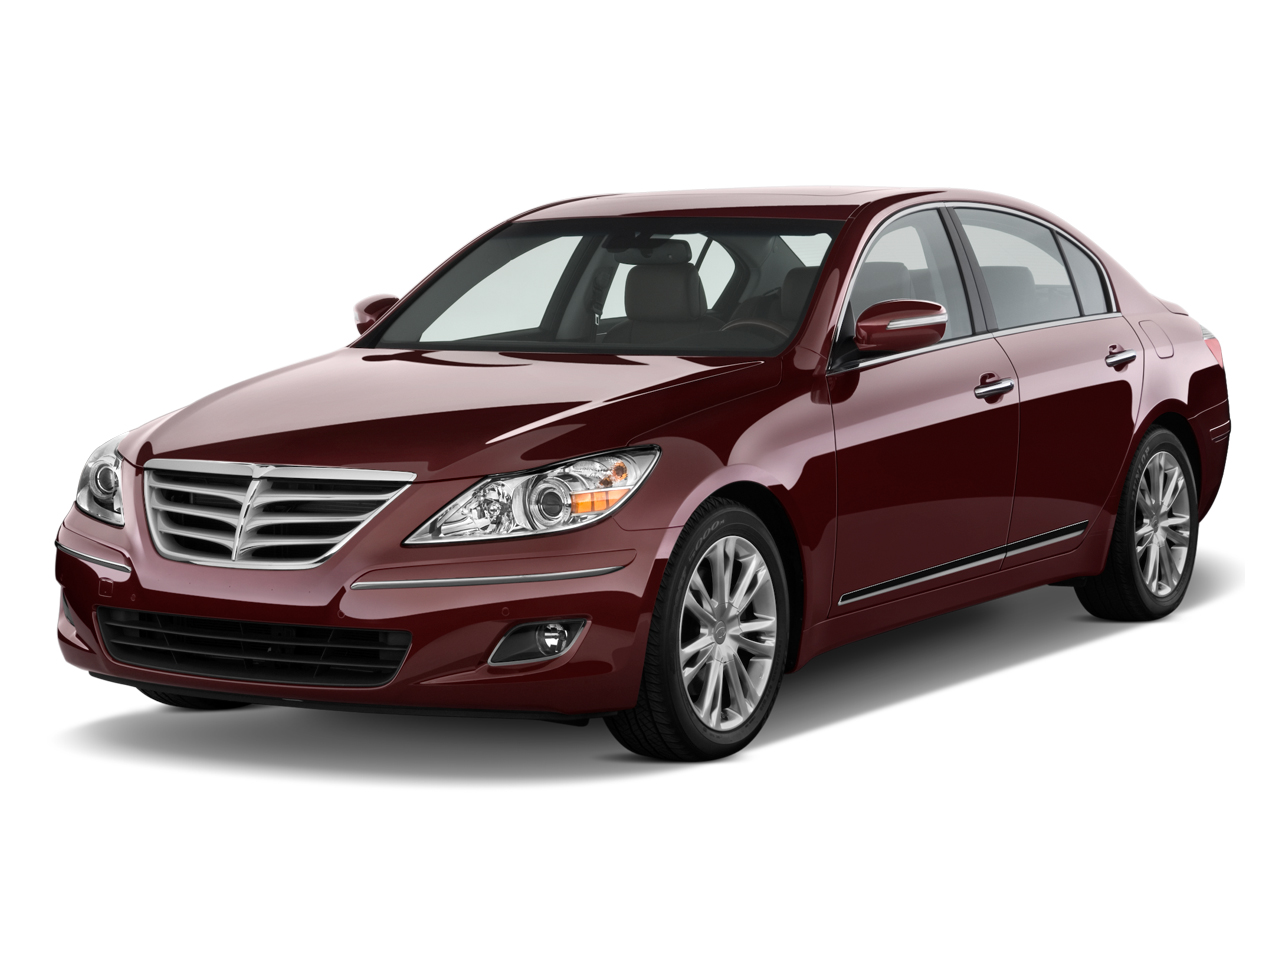 2011 hyundai genesis review ratings specs prices and photos the car connection. Black Bedroom Furniture Sets. Home Design Ideas